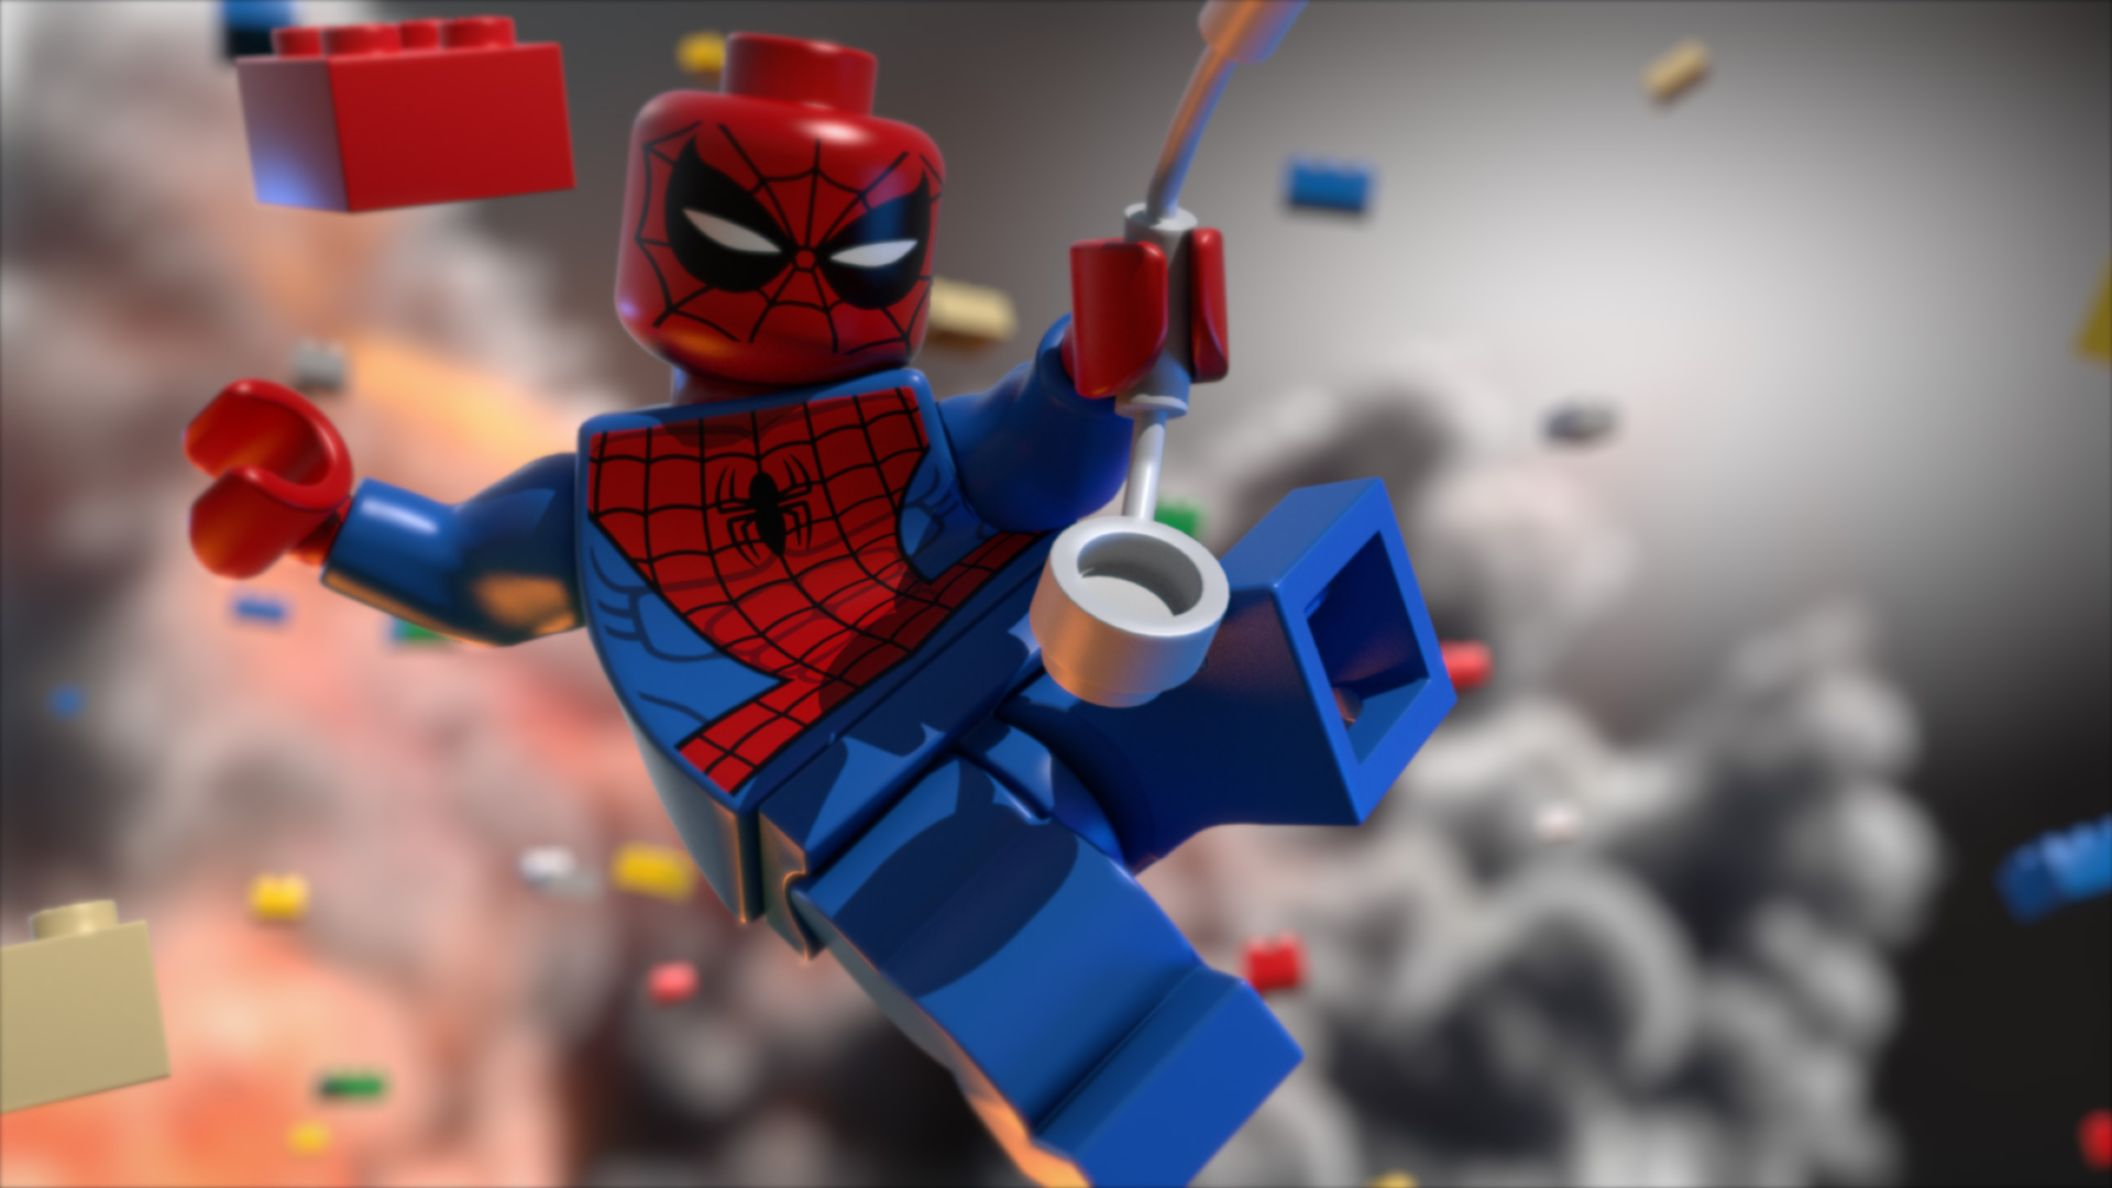 Download free HD Spiderman Lego Cartoon HD for Android Wallpaper, image